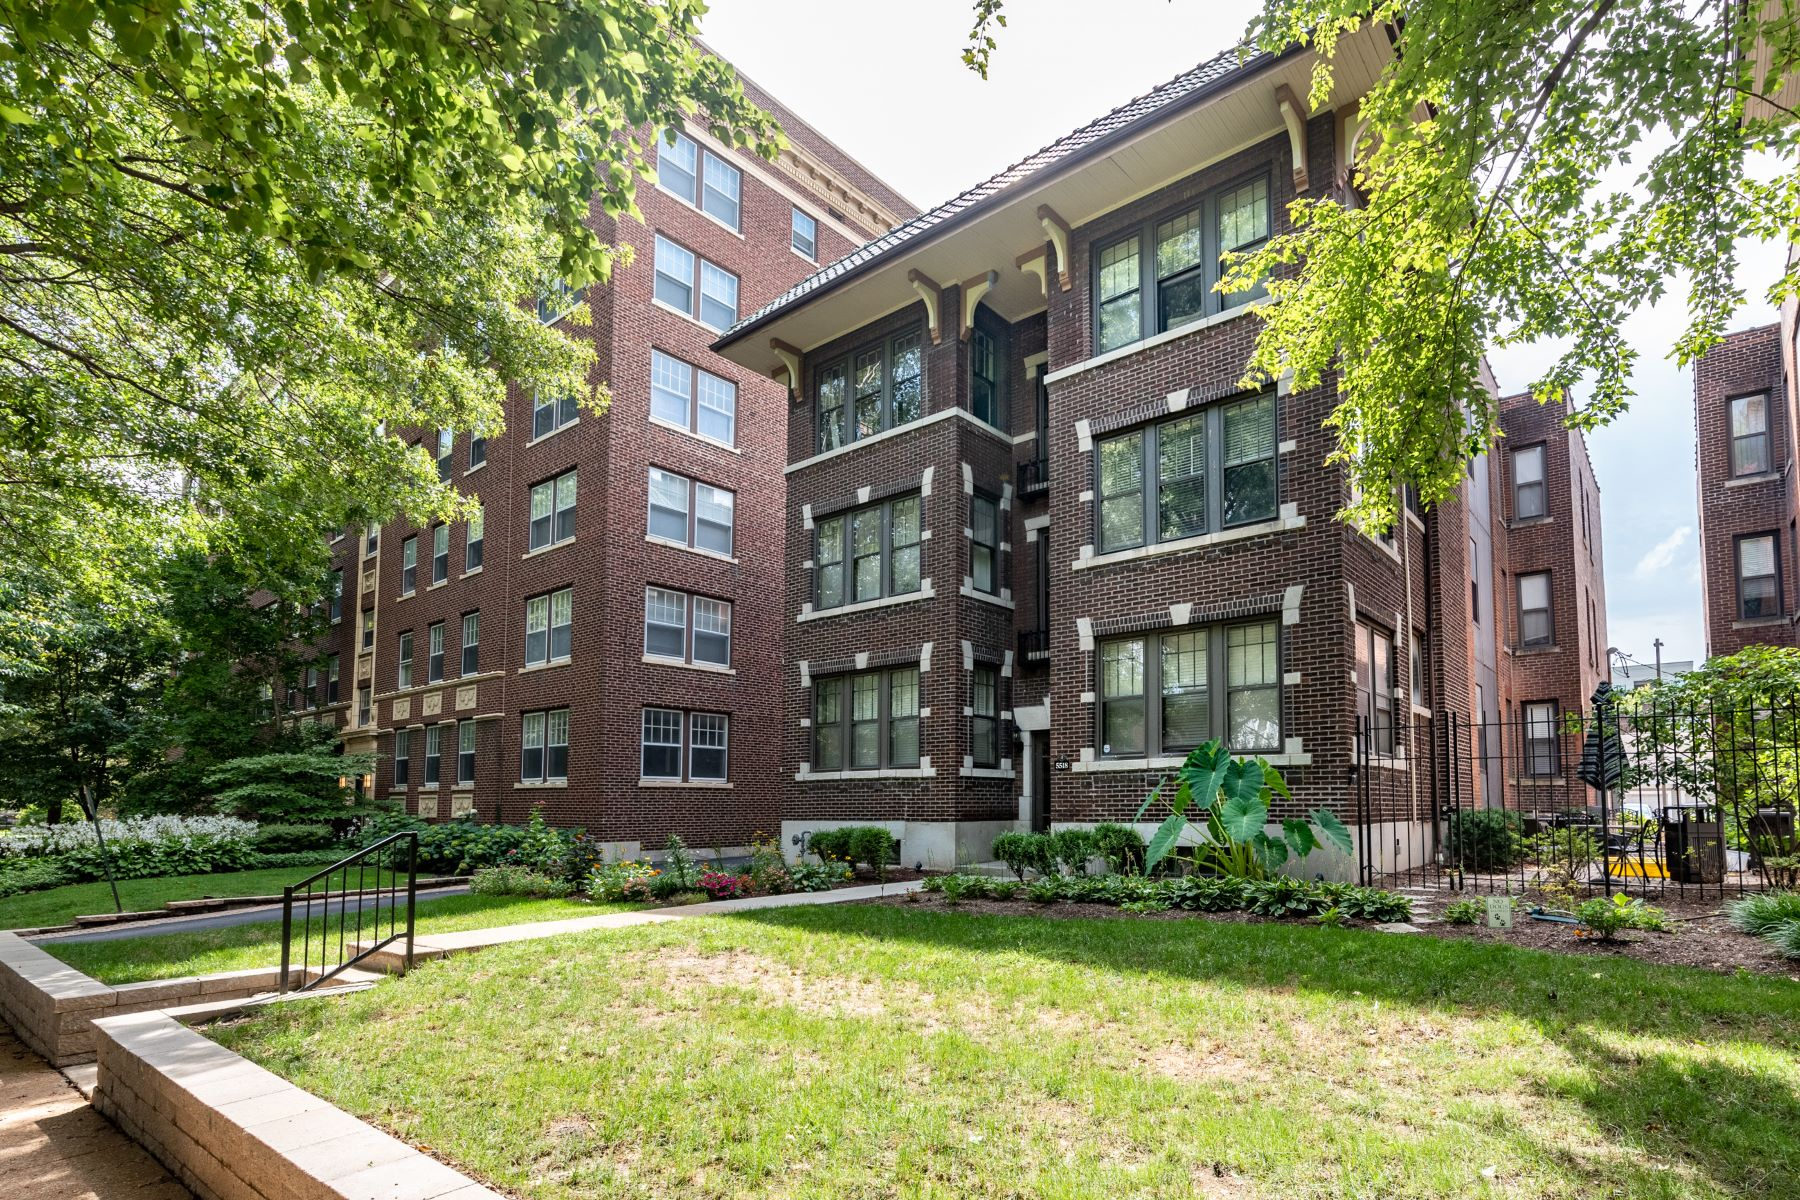 Additional photo for property listing at DeBaliviere Place Condo 5518 Waterman Boulevard #31 St. Louis, Missouri 63112 United States